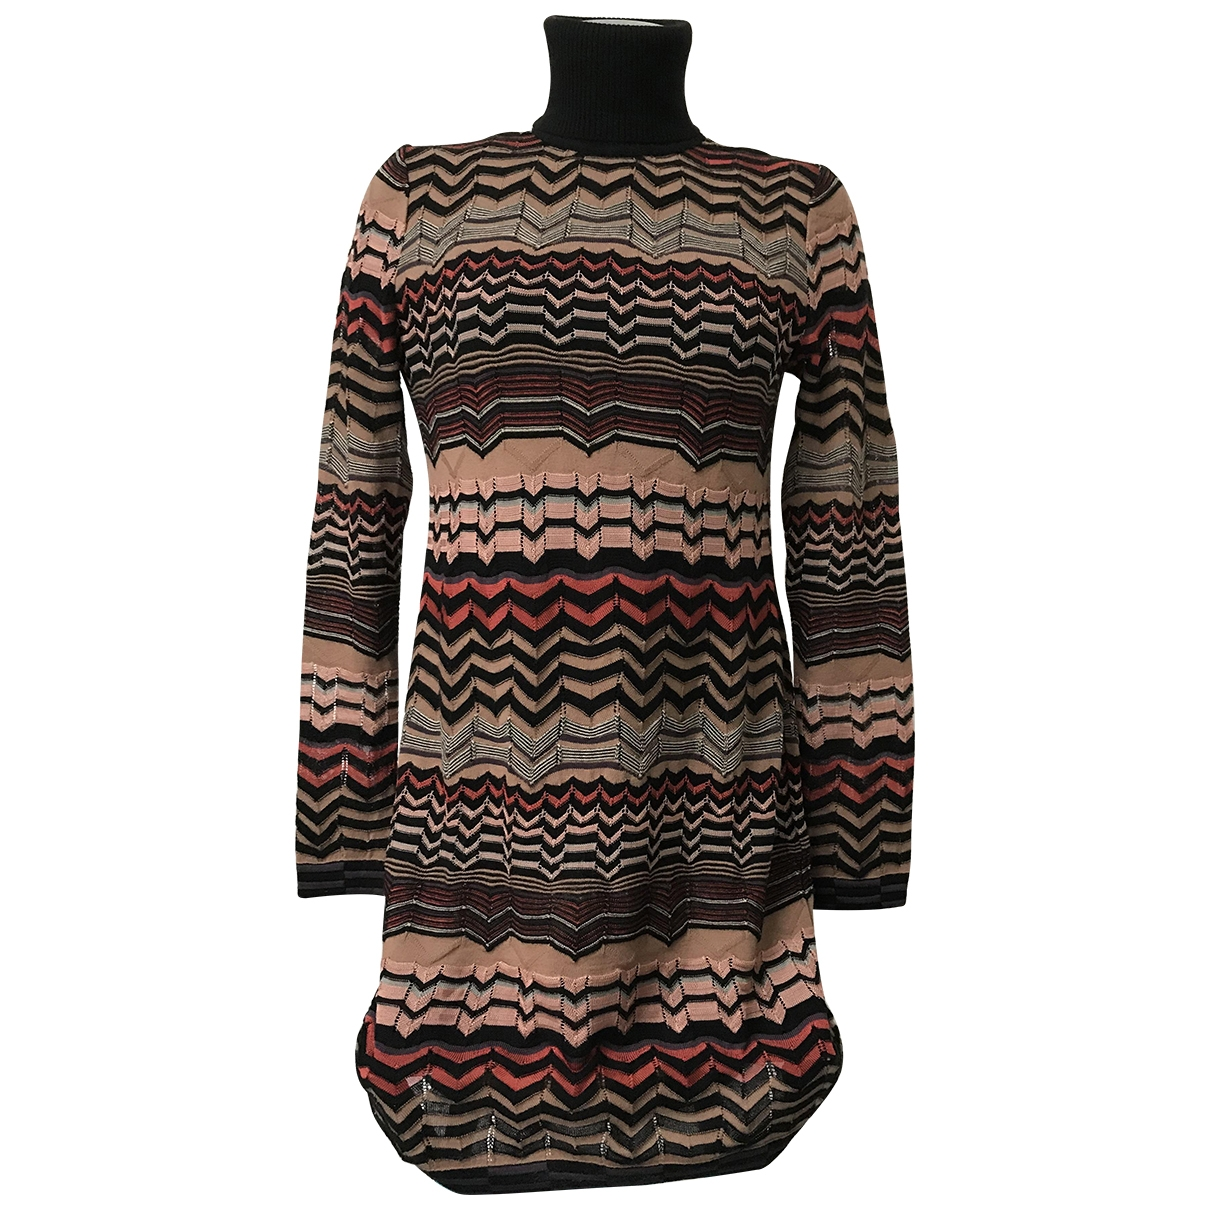 M Missoni \N Multicolour dress for Women 42 IT